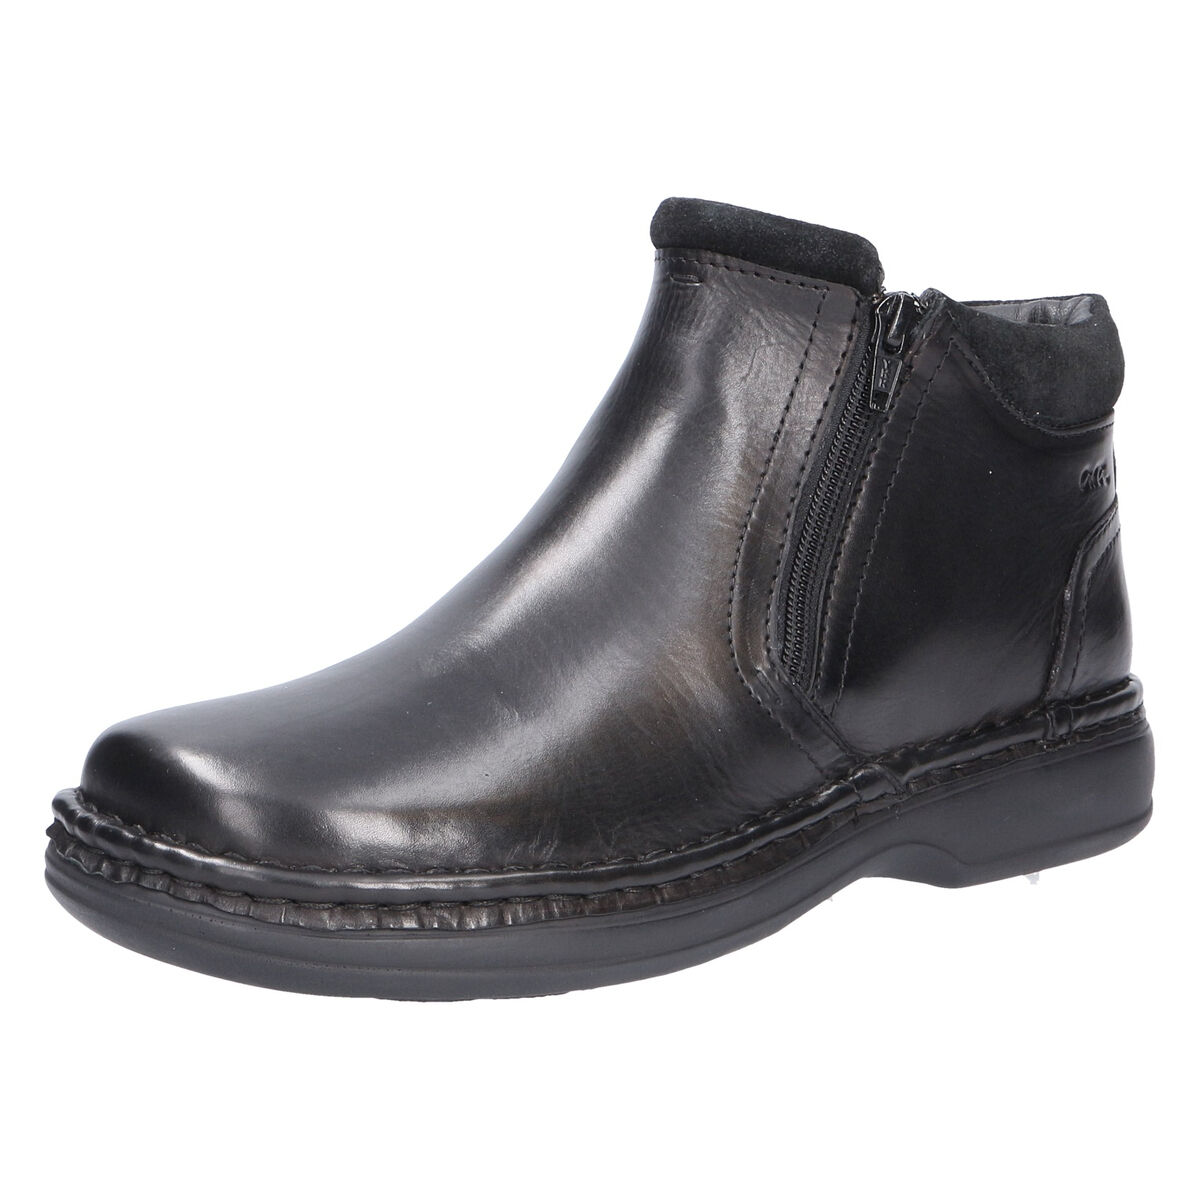 low priced c785a a03f4 Stiefel/Boot, EUR 43